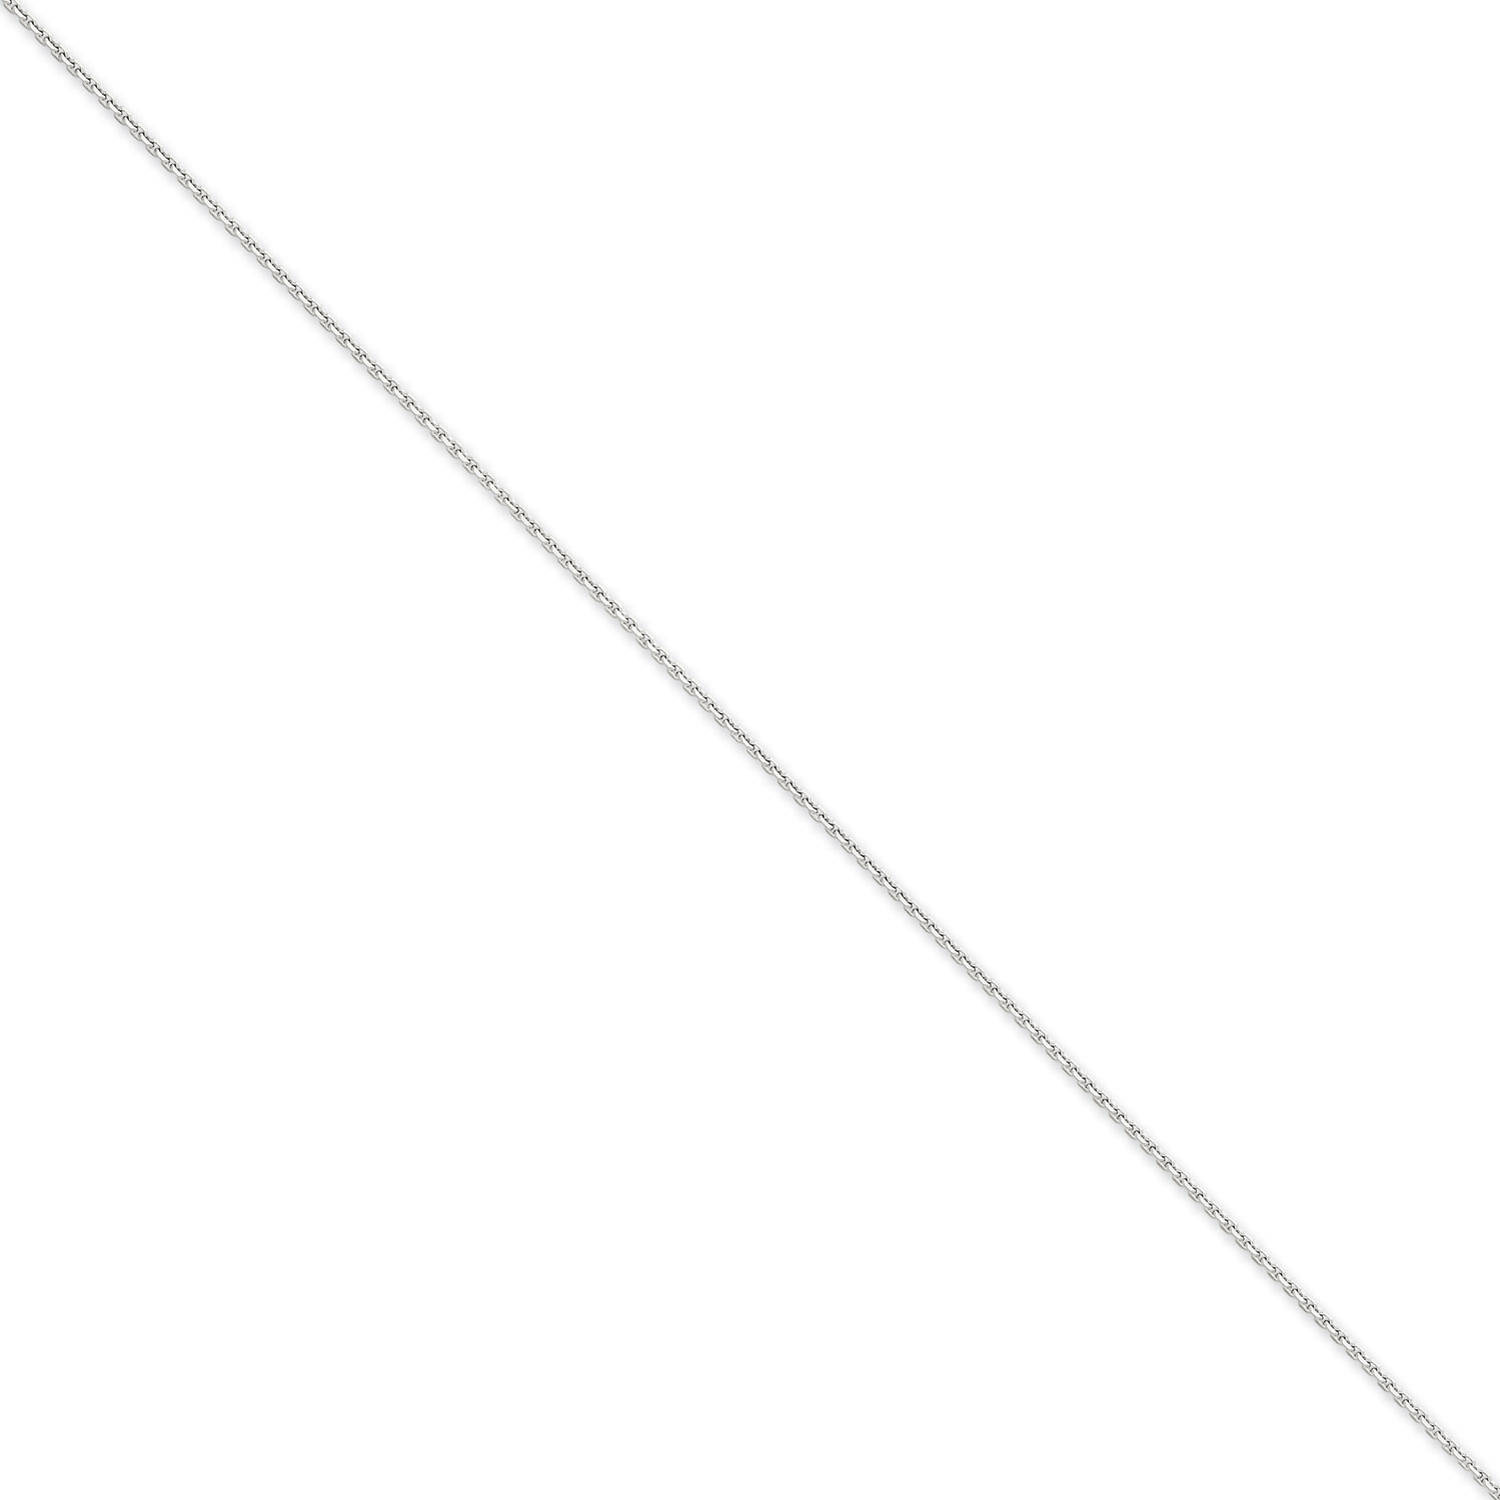 14kt White Gold 1.3mm Solid Diamond-Cut Cable Chain by Generic